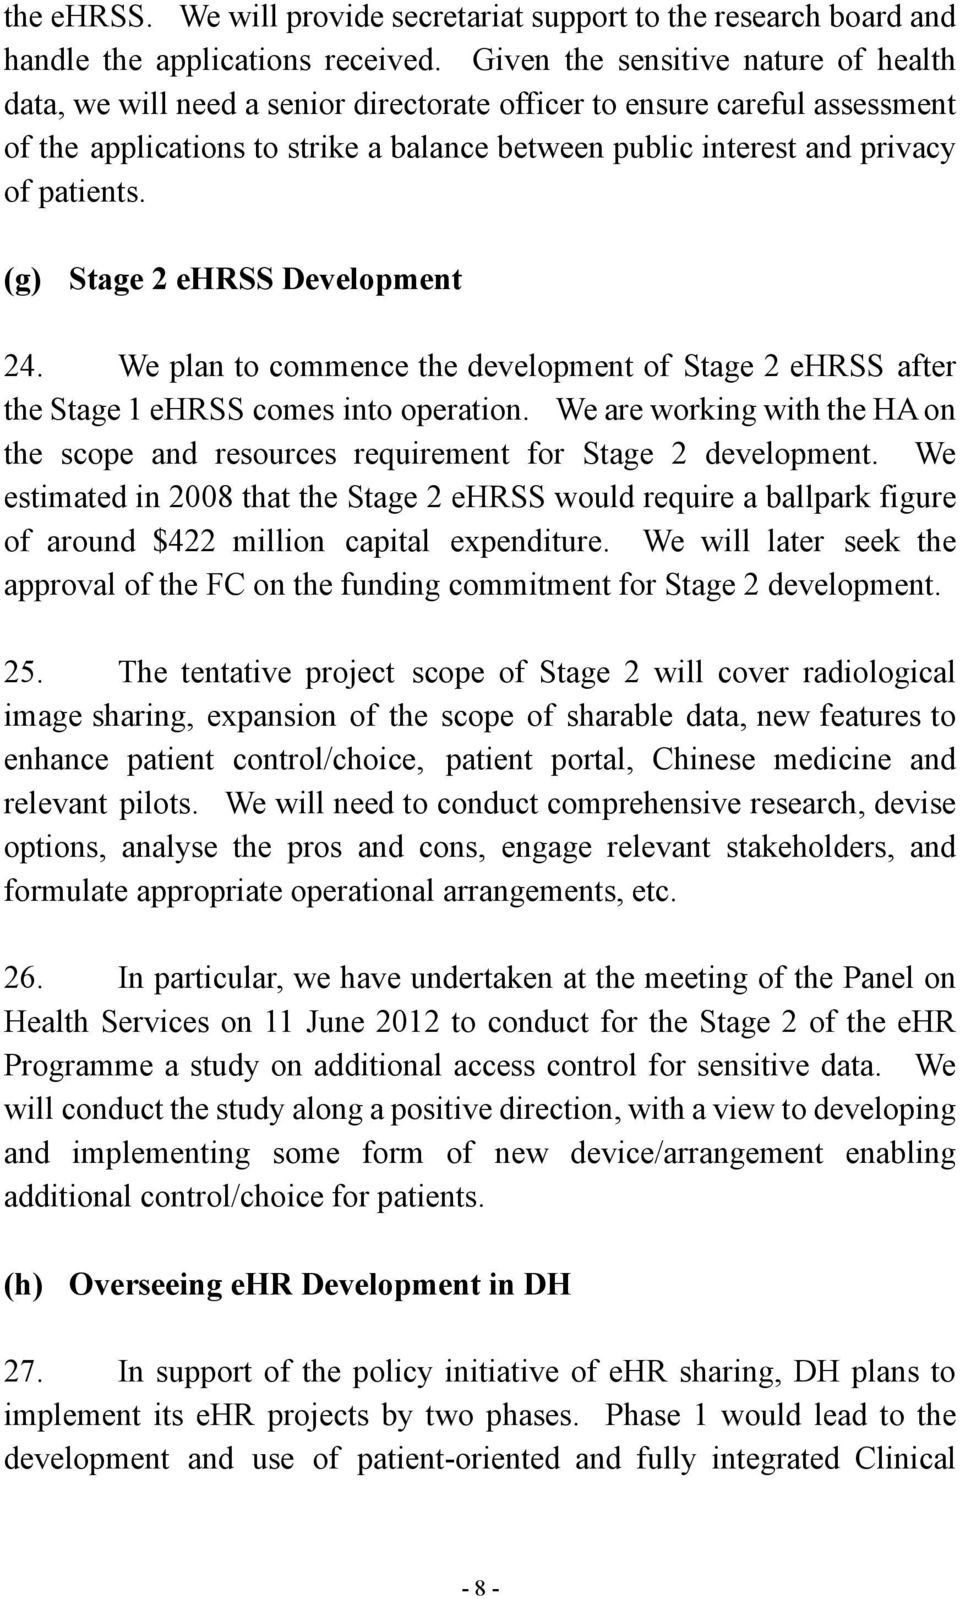 patients. (g) Stage 2 ehrss Development 24. We plan to commence the development of Stage 2 ehrss after the Stage 1 ehrss comes into operation.